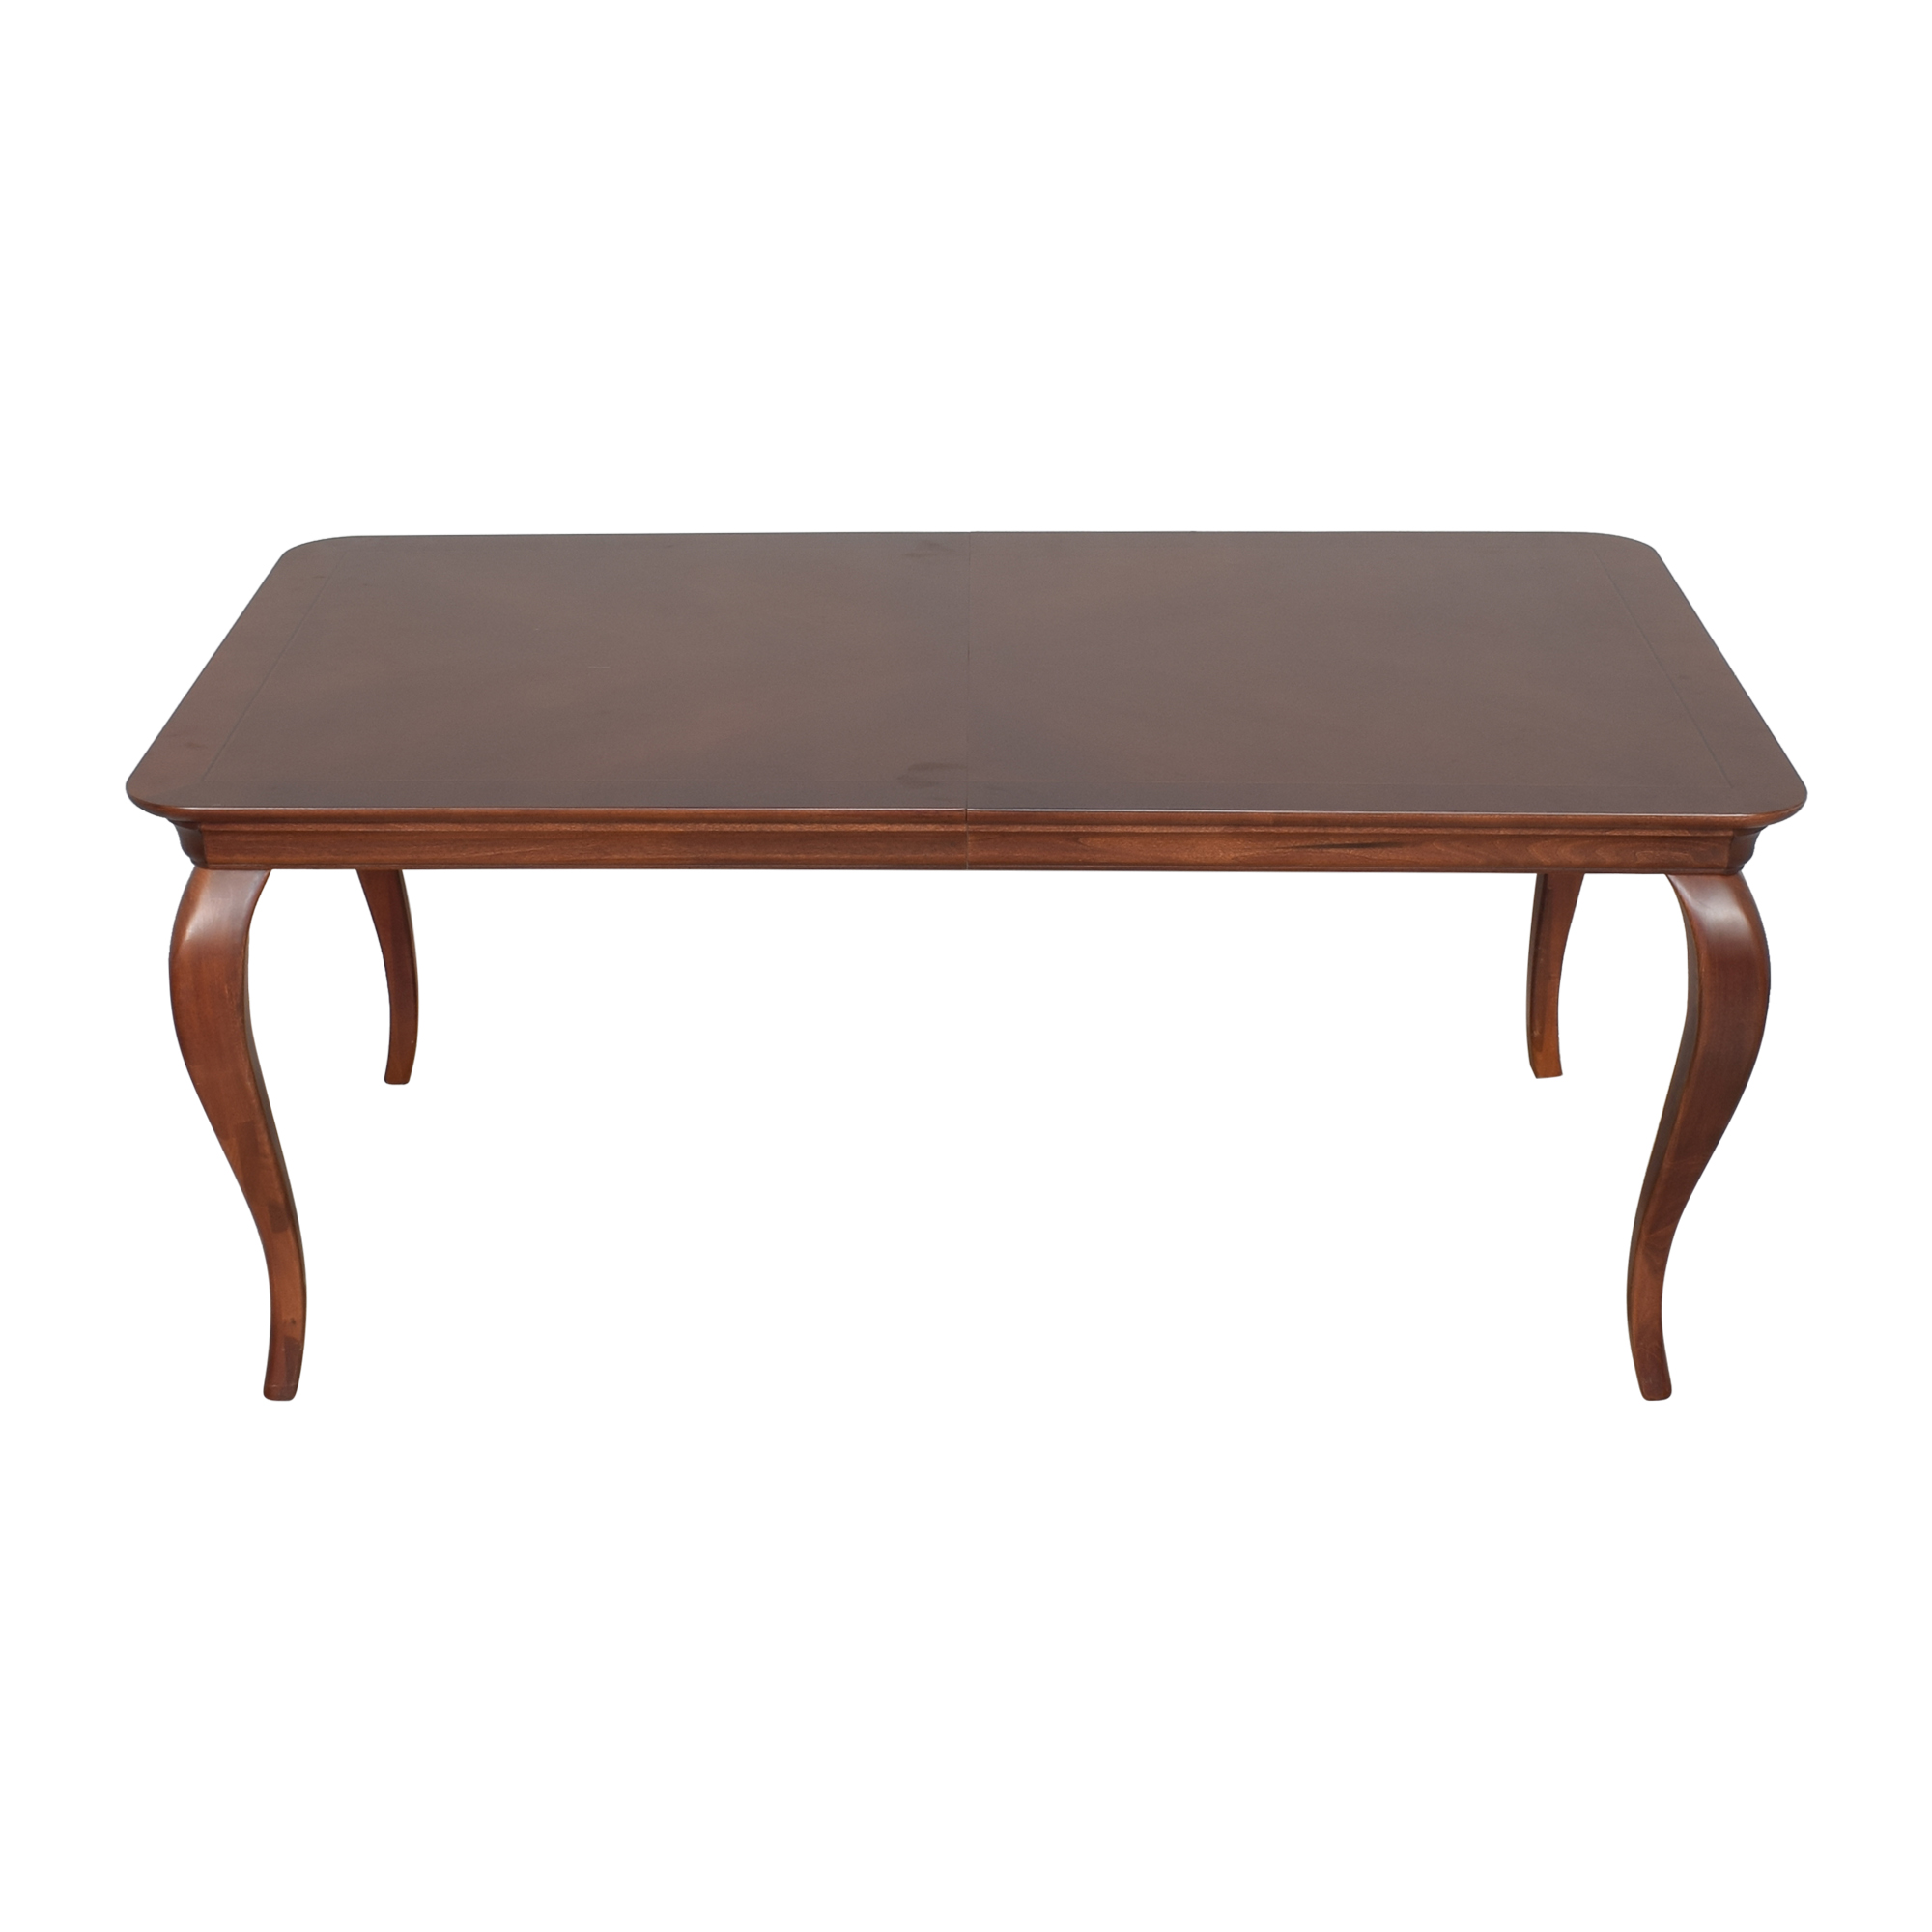 Thomasville Thomasville Extendable Cabriole Dining Table dimensions